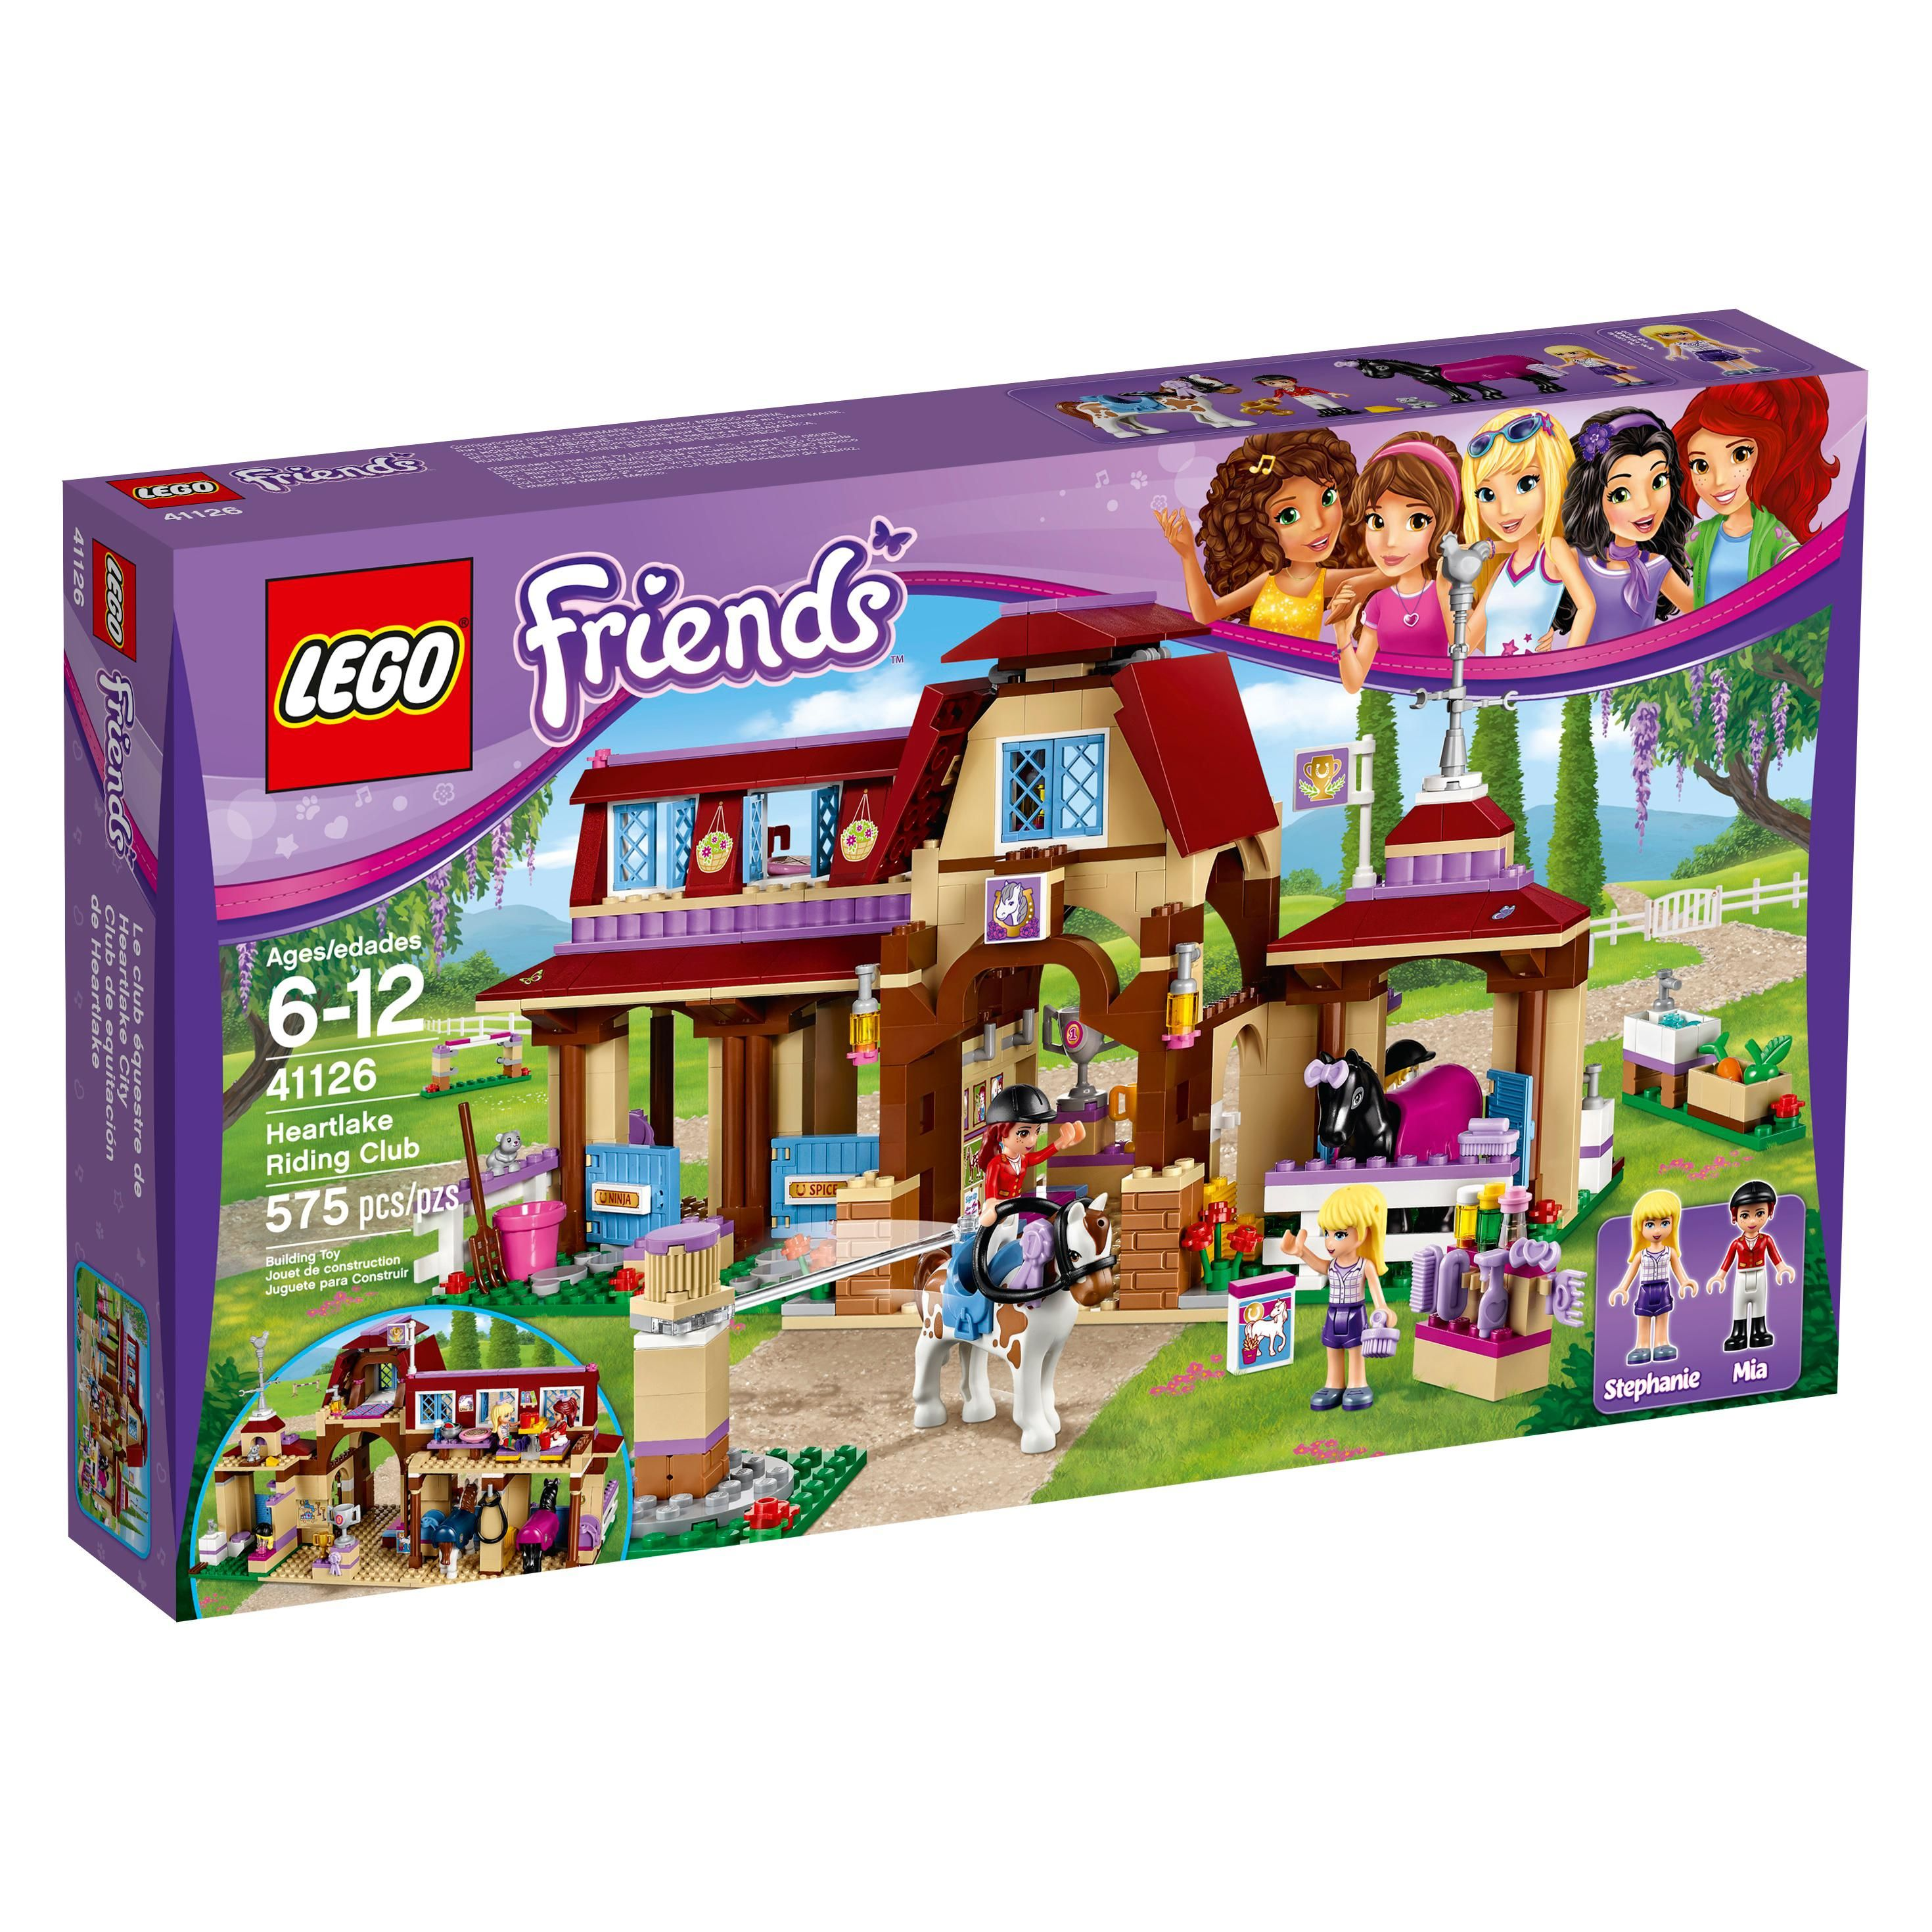 Lego Toys For Girls : American girl legos girls toys age lego